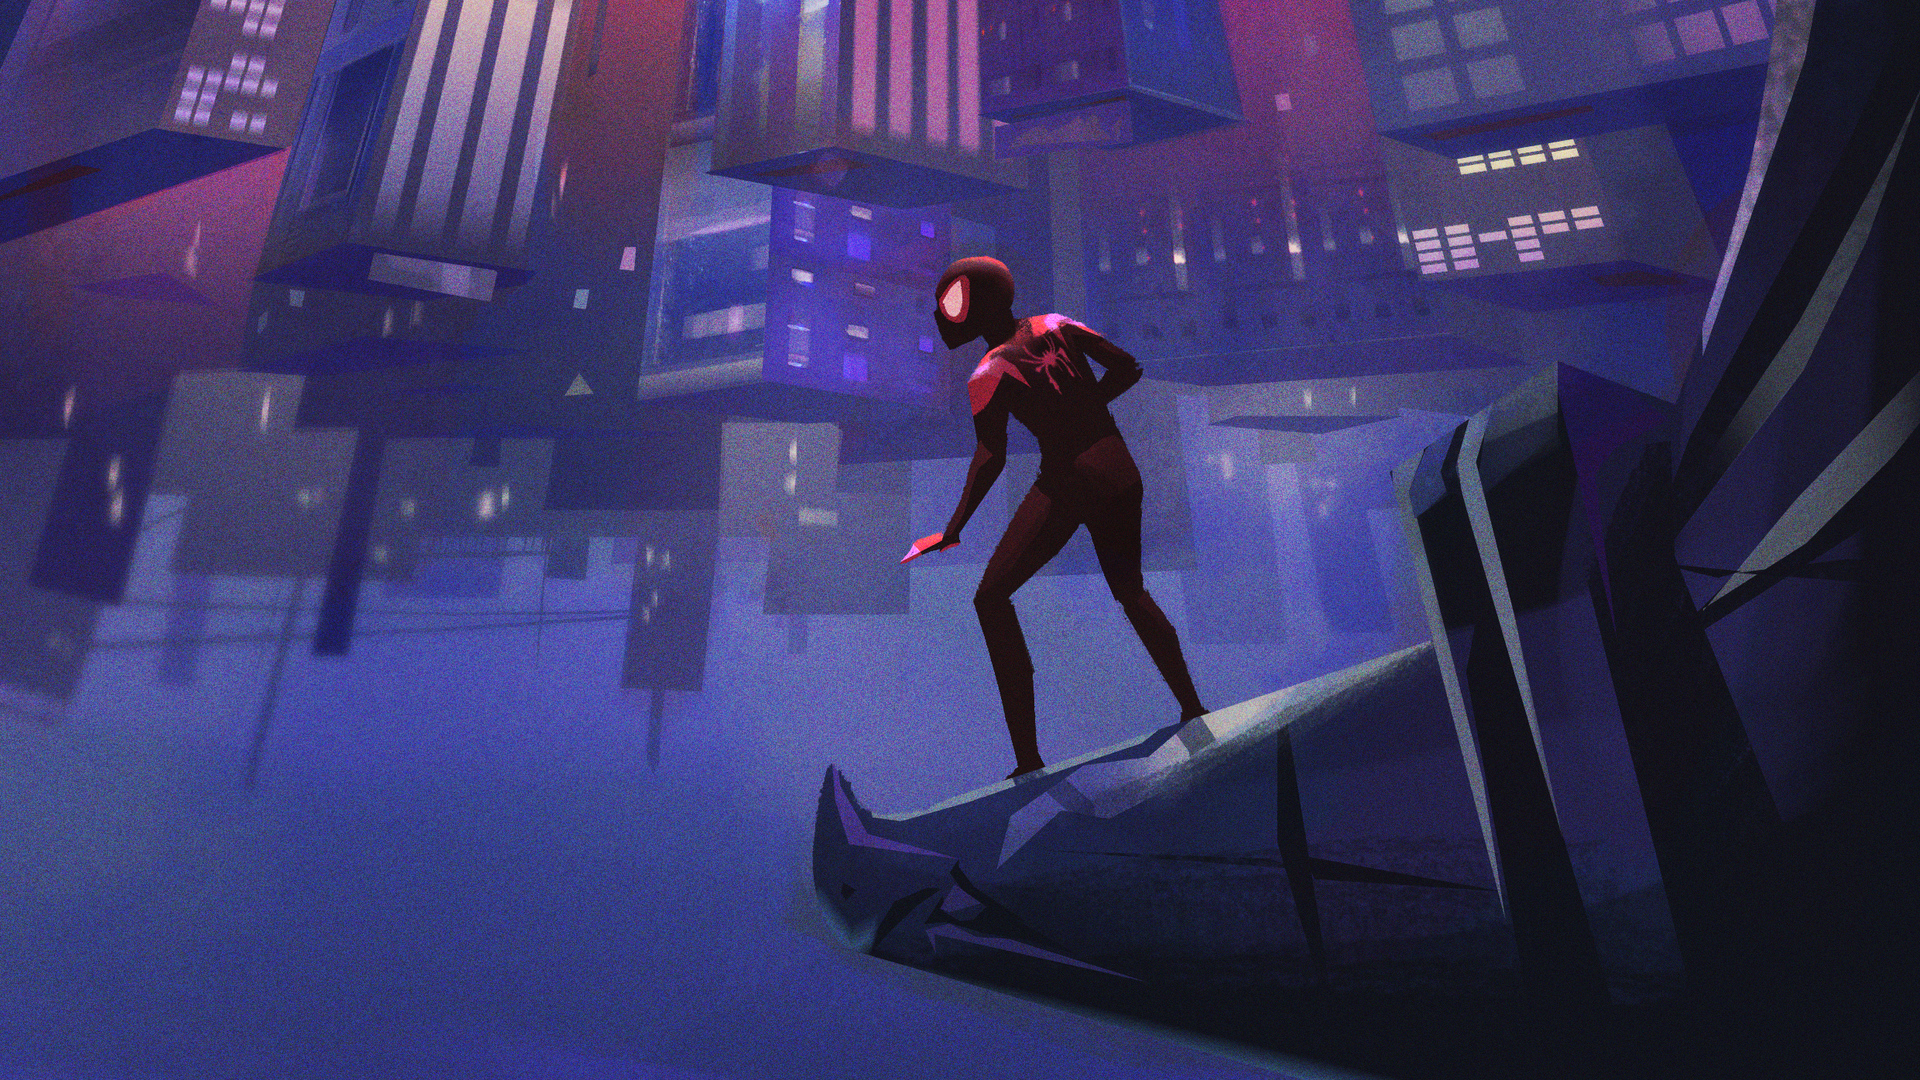 1920x1080 Spiderman Into The Spider Verse Artworks Laptop Full Hd